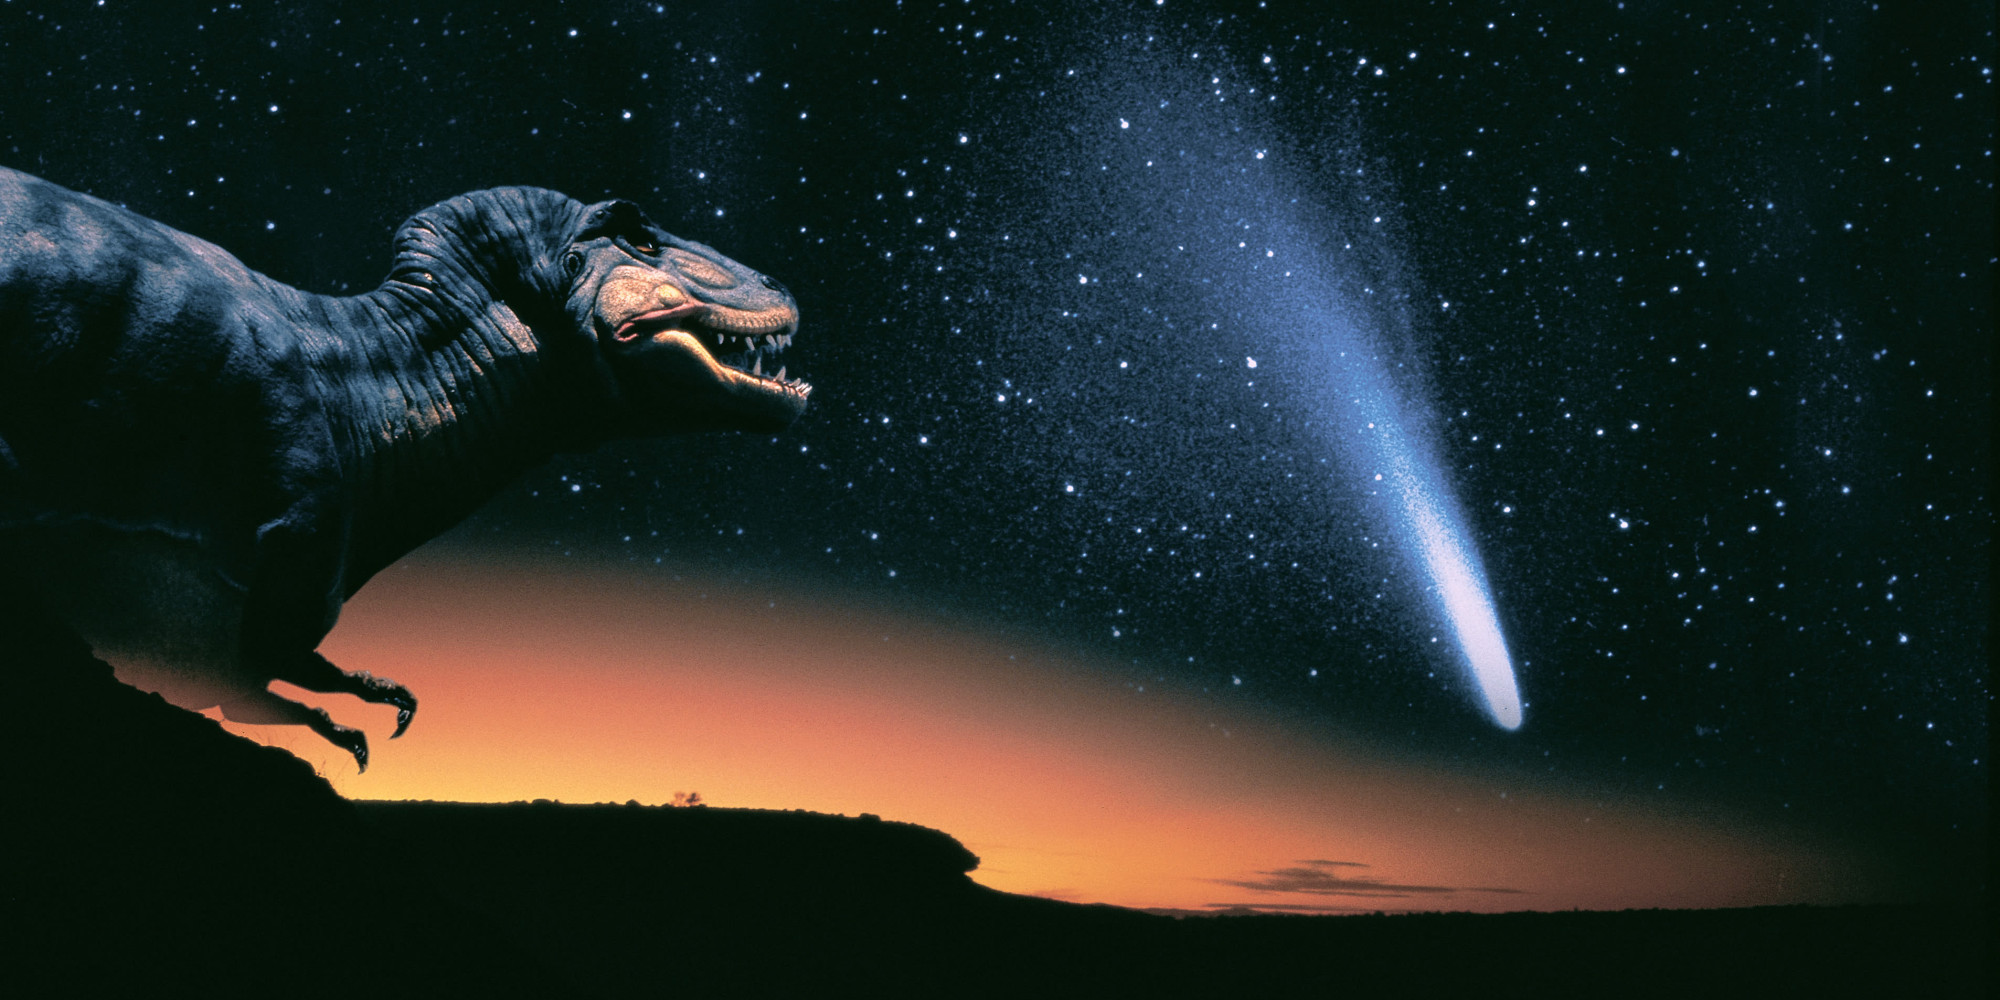 dinosaur killing asteroid size - photo #12